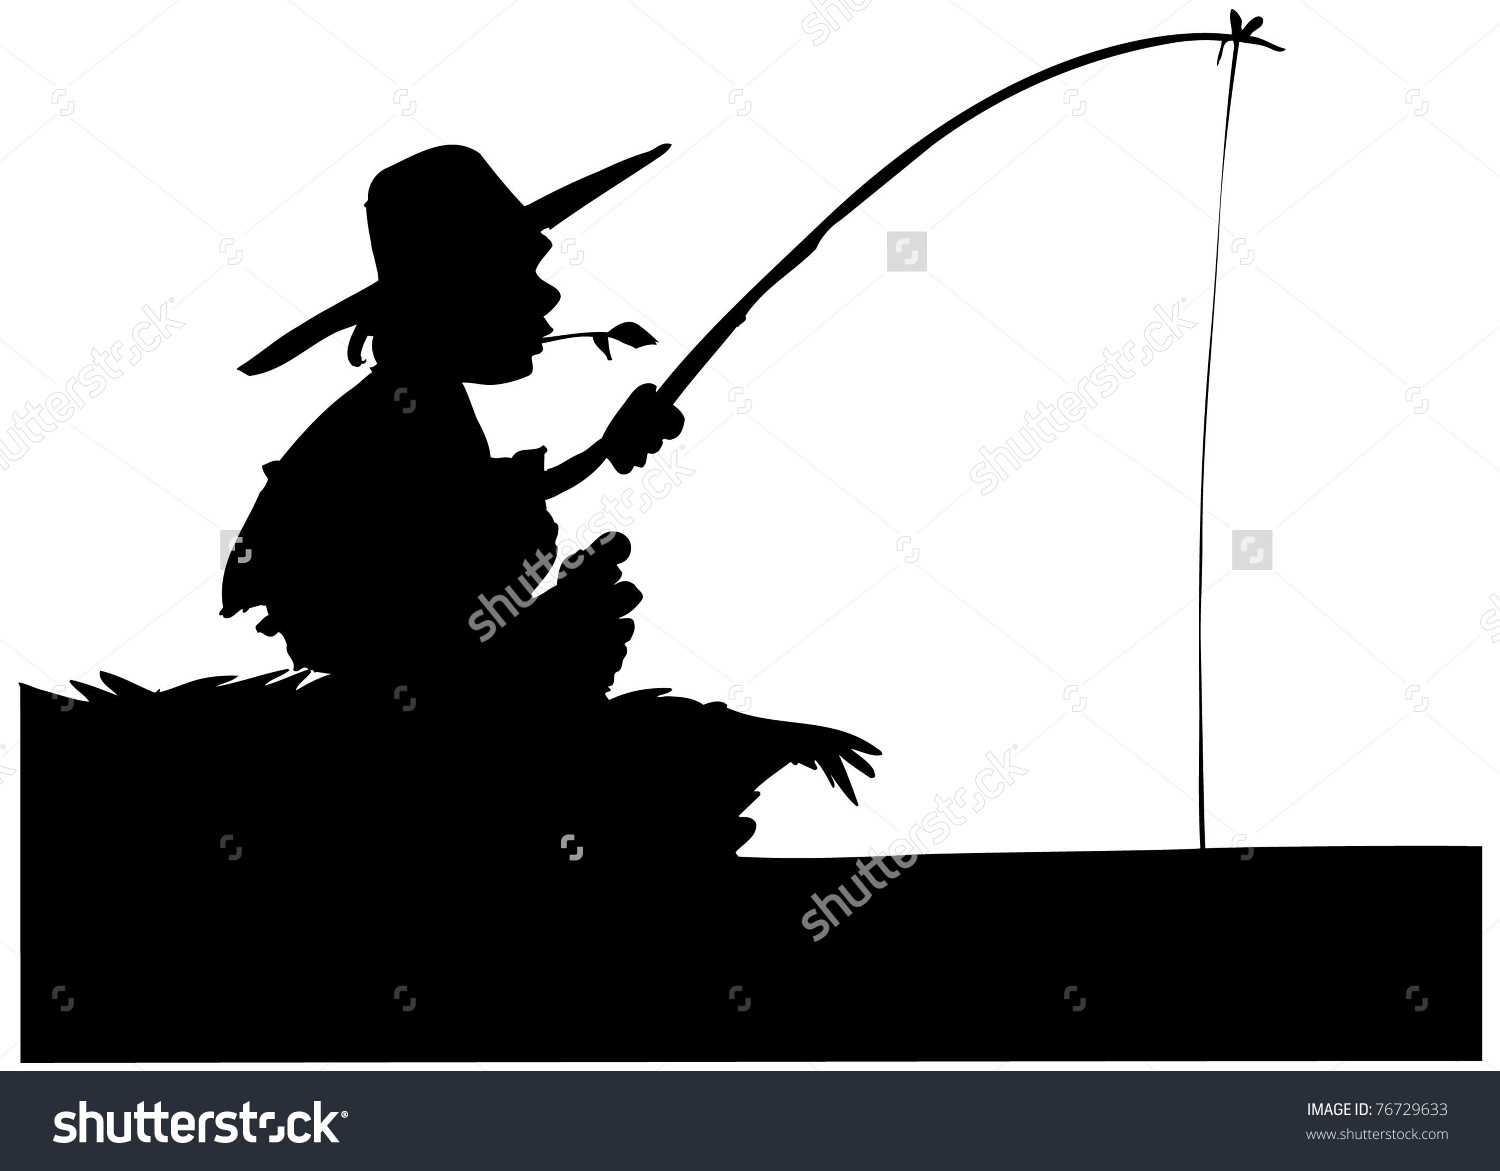 Silhouette Of Boy Fishing. Isolated On White Stock Vector.